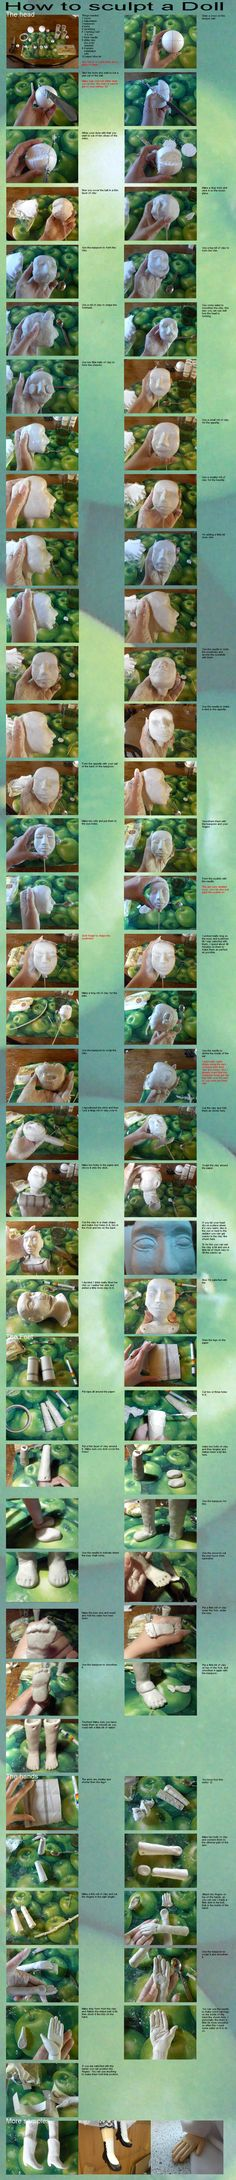 How to sculpt a doll-tutorial- by ~Hamkaastostie on deviantART